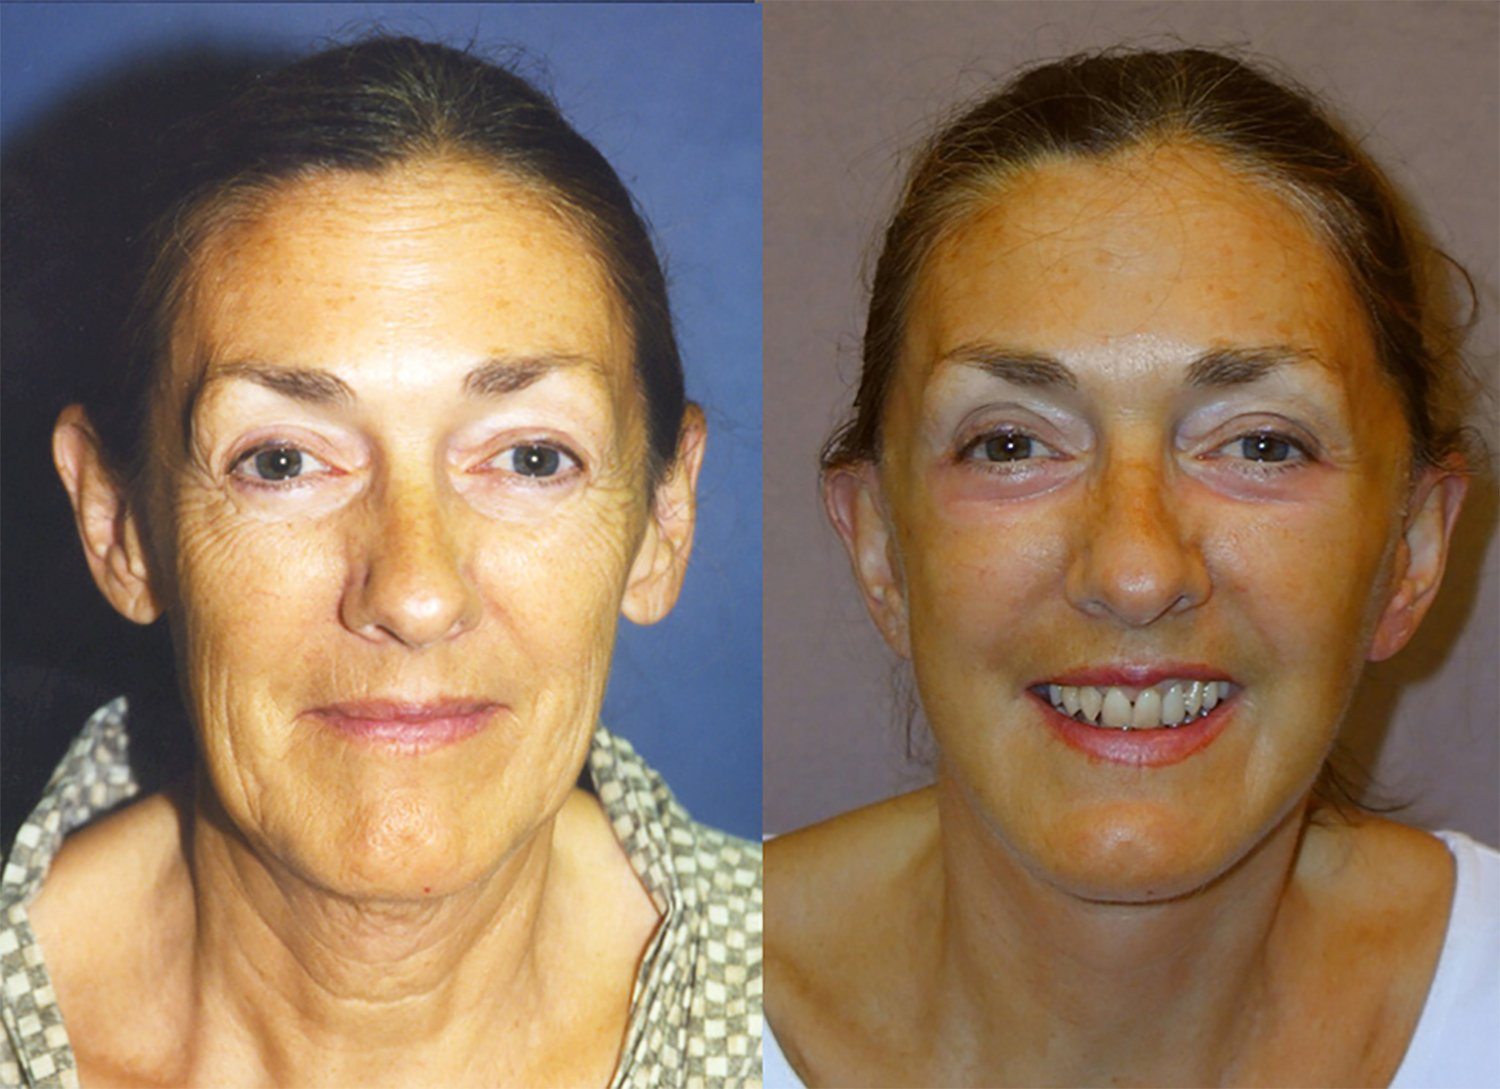 62-year-old facelift, upper and lower eyelids, peel lower eyelids, one year